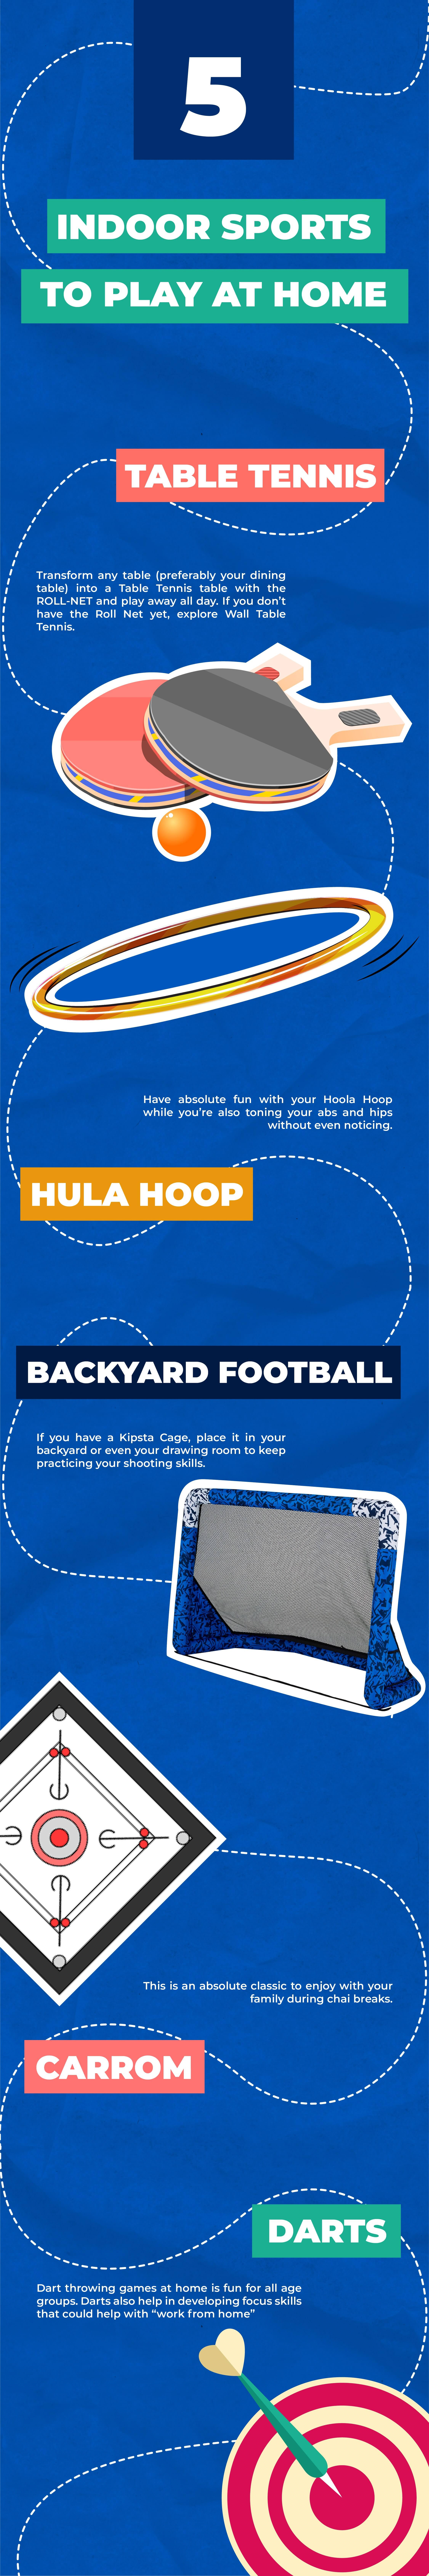 5 Indoor Sports to Play at Home